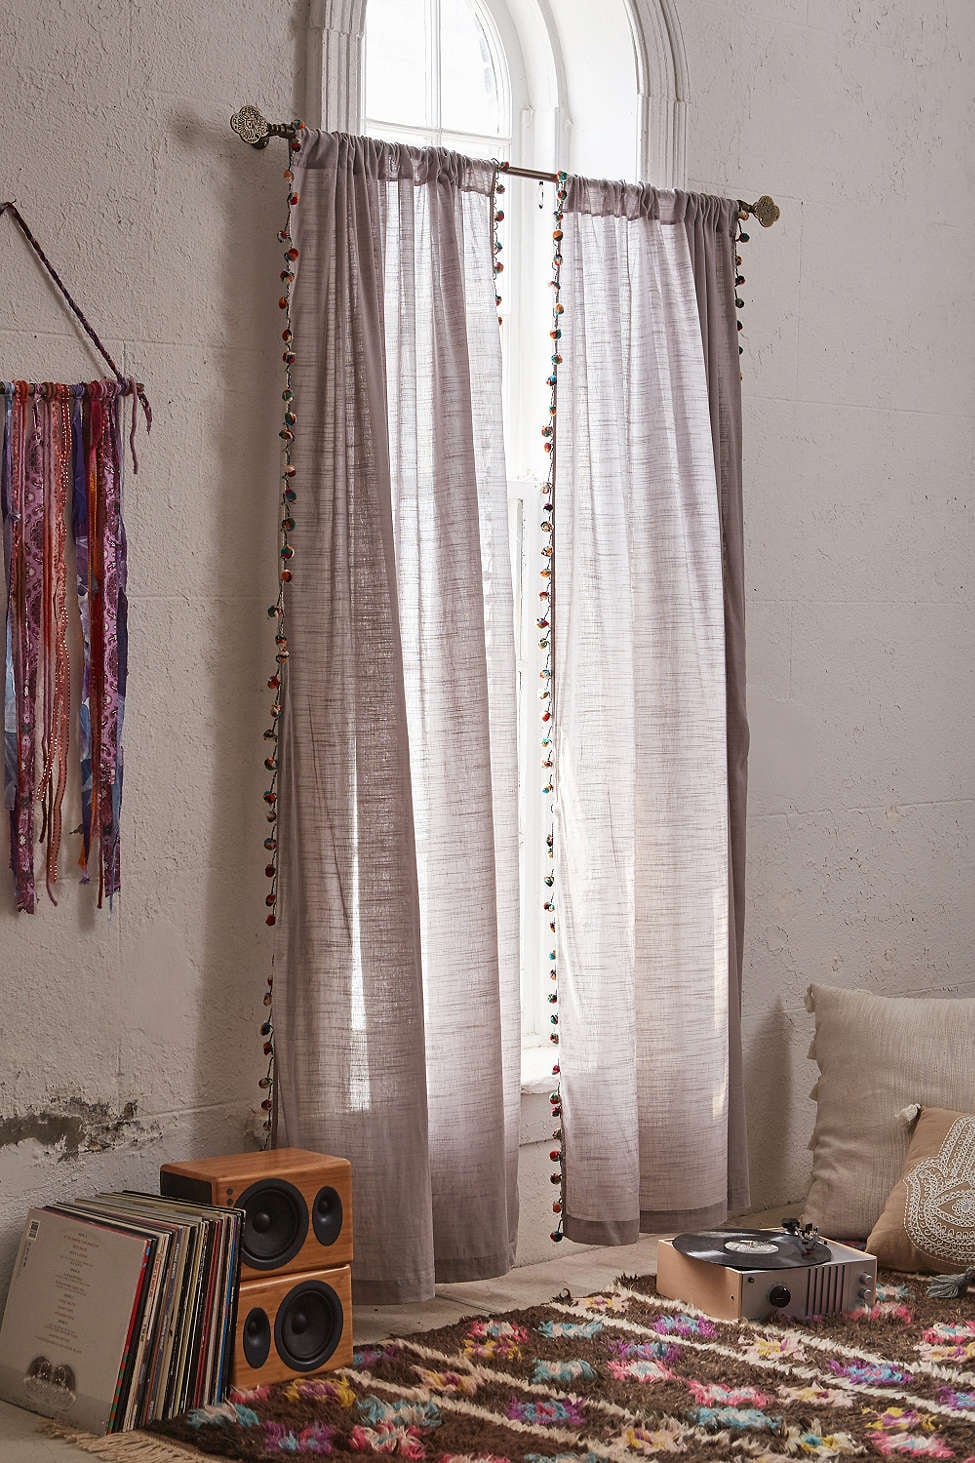 NA Bedroom: Hang Curtains